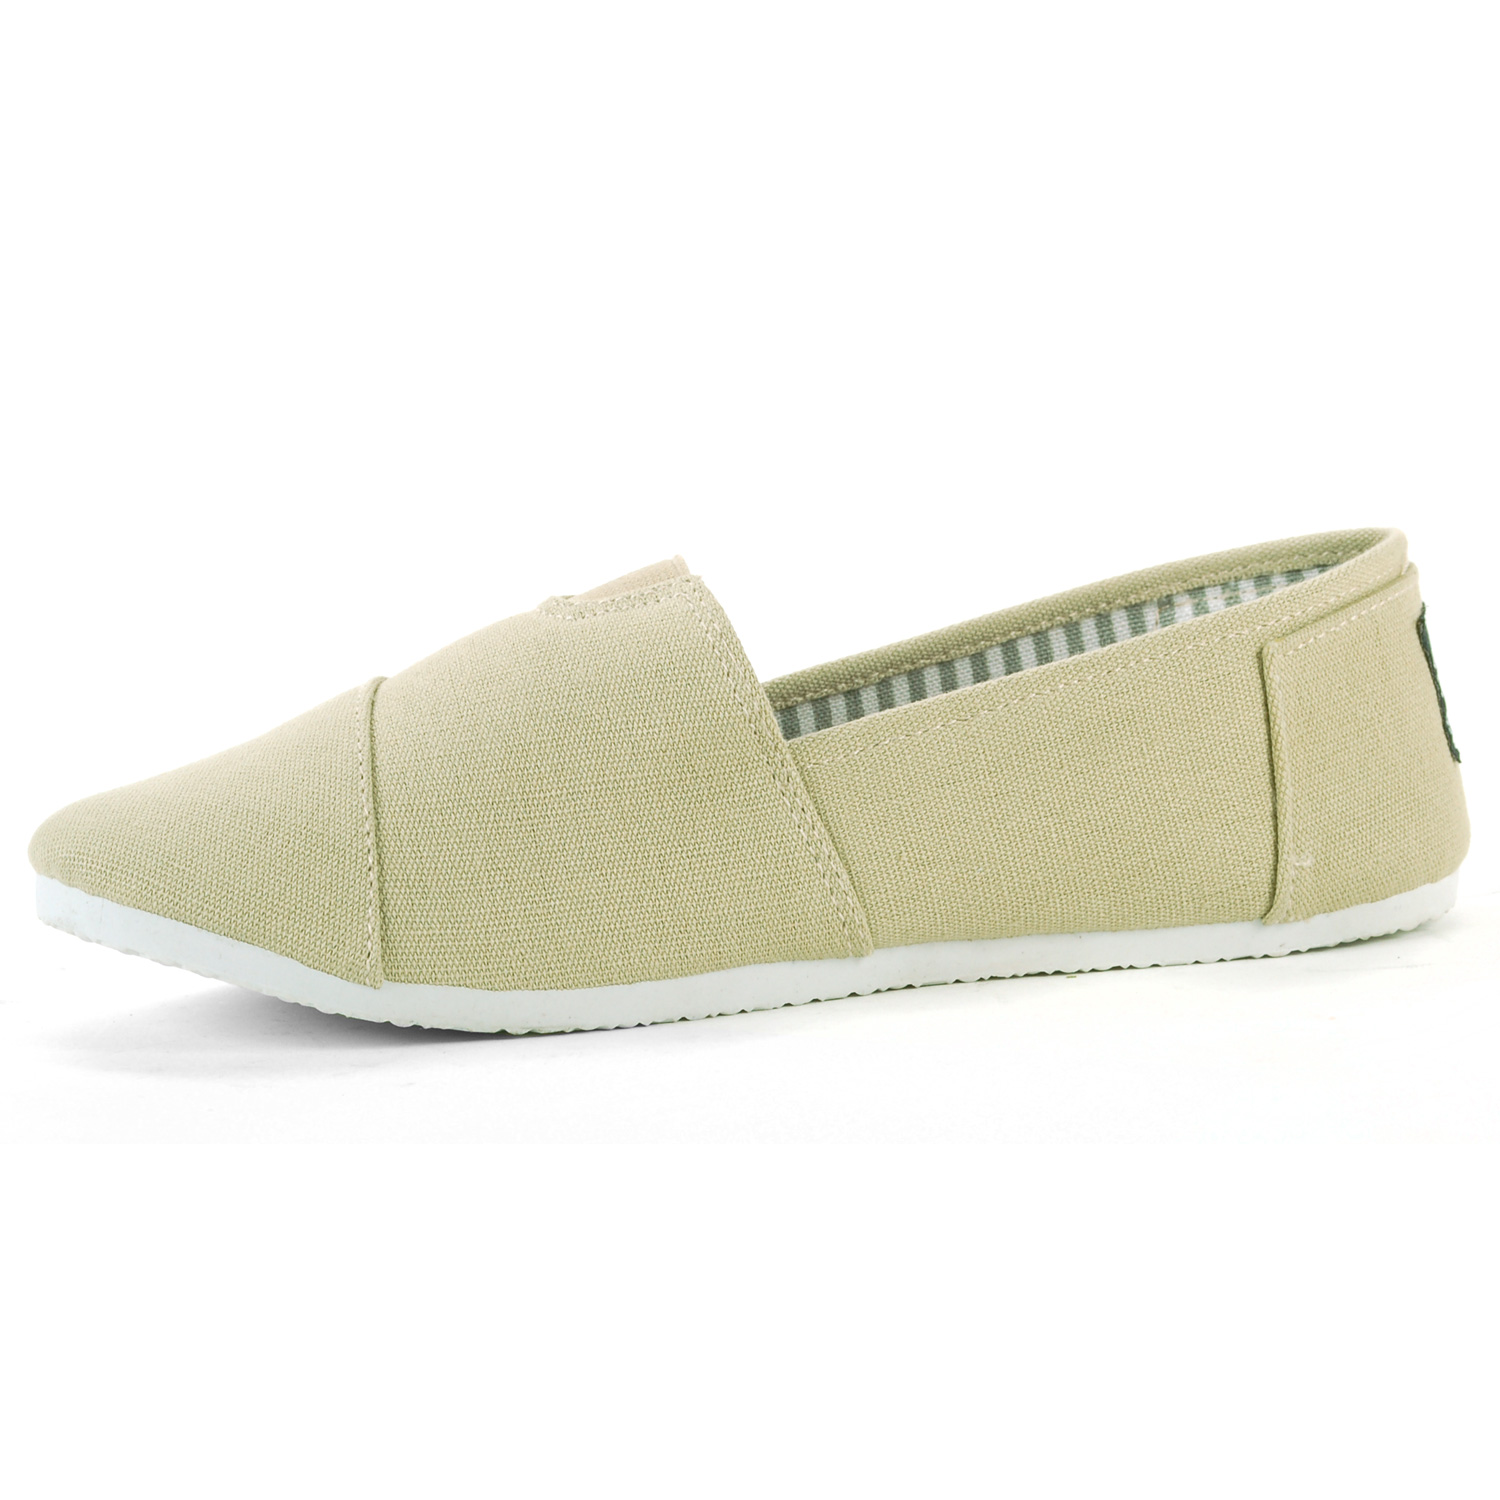 alpine swiss caroline womens canvas flats espadrille